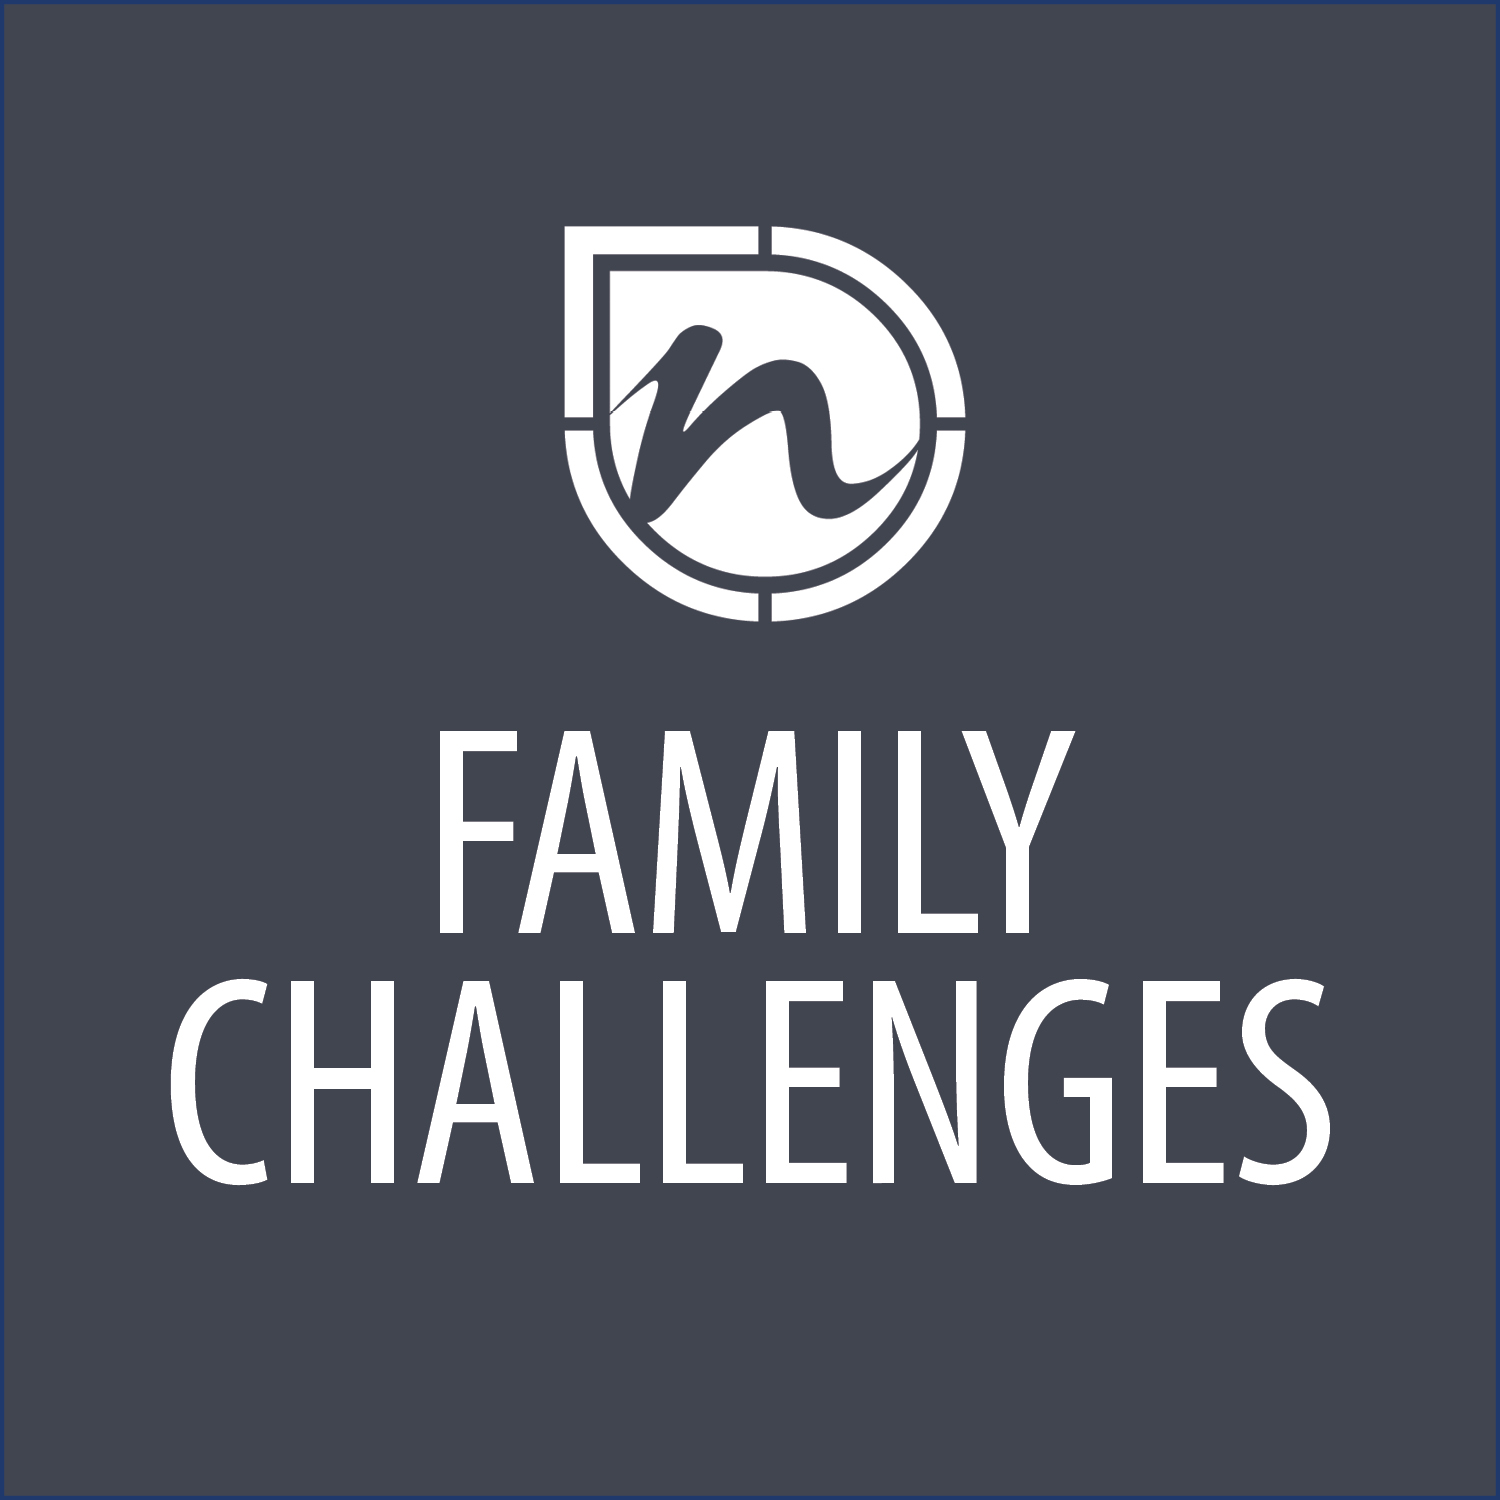 Websquare FAMILY CHALLENGES.jpg